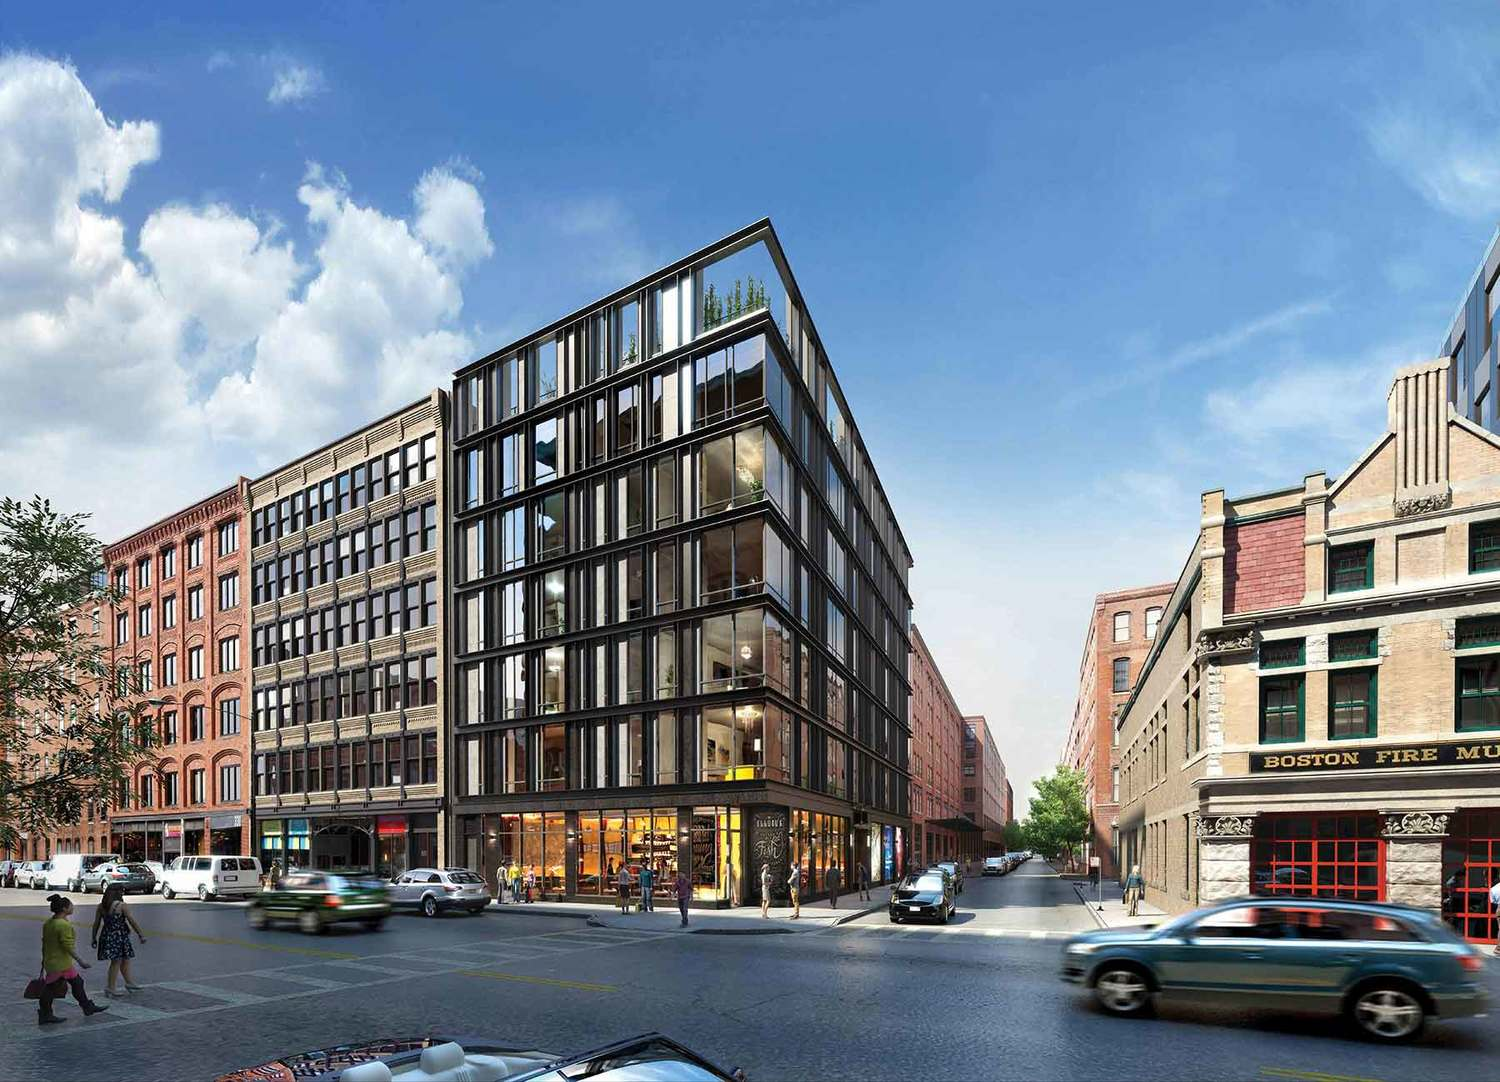 NEW DEVELOPER ON TAP FOR ULTRA-LUXURY FORT POINT CONDOS - Boston's Fort Point neighborhood has a new developer.